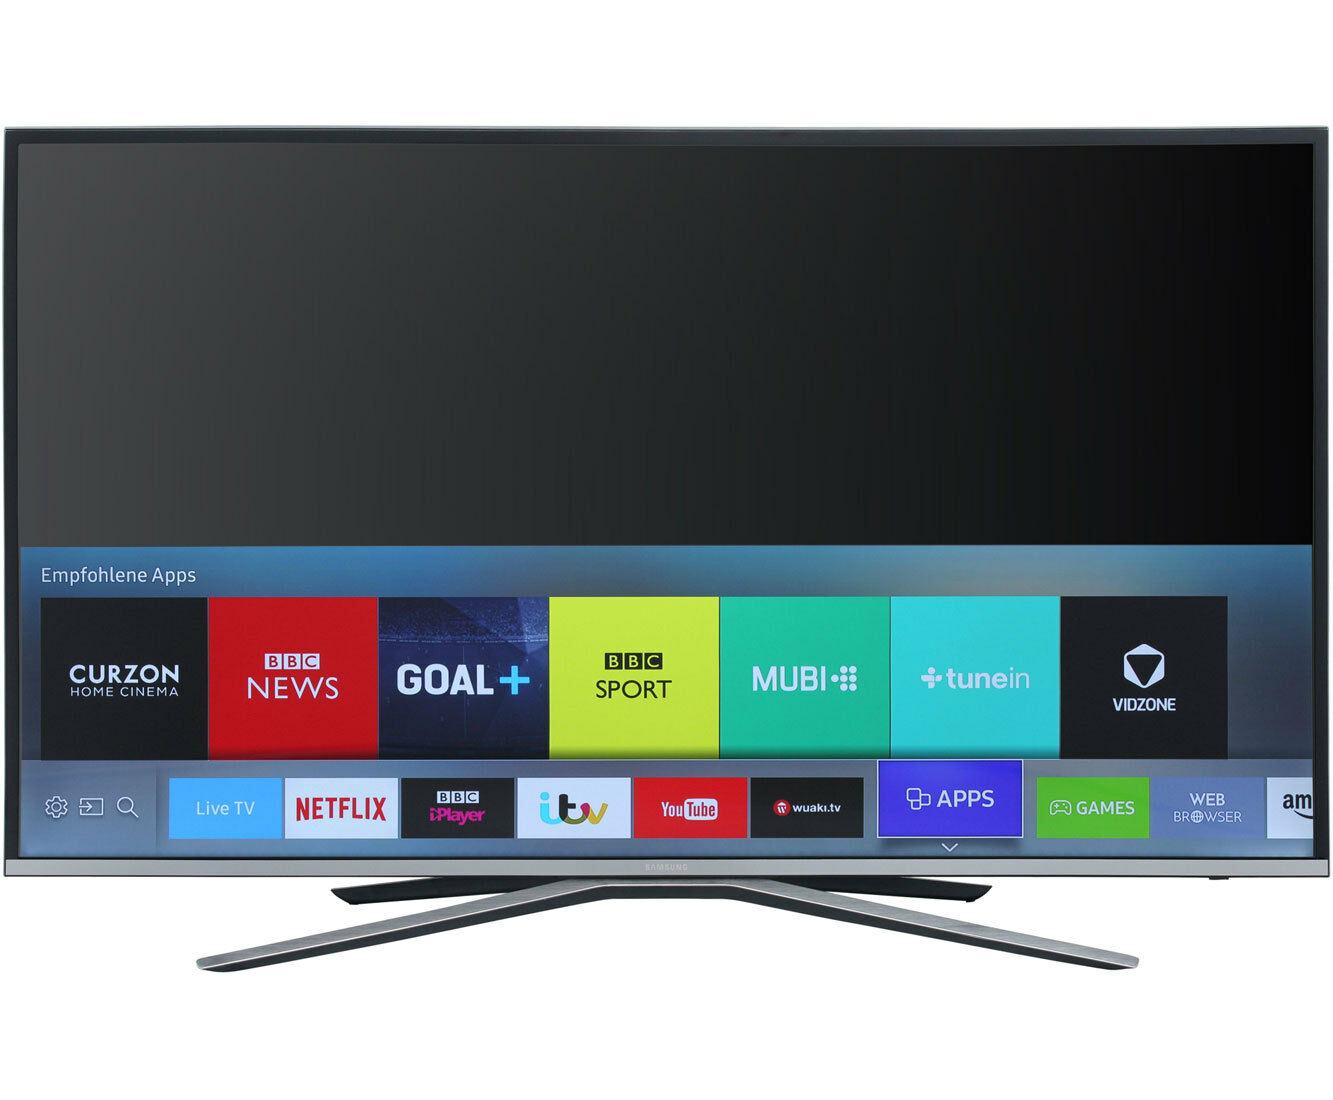 samsung ue55ku6409uxzg 4k uhd led fernseher 138 cm 55 zoll silber eur 949 00 picclick de. Black Bedroom Furniture Sets. Home Design Ideas